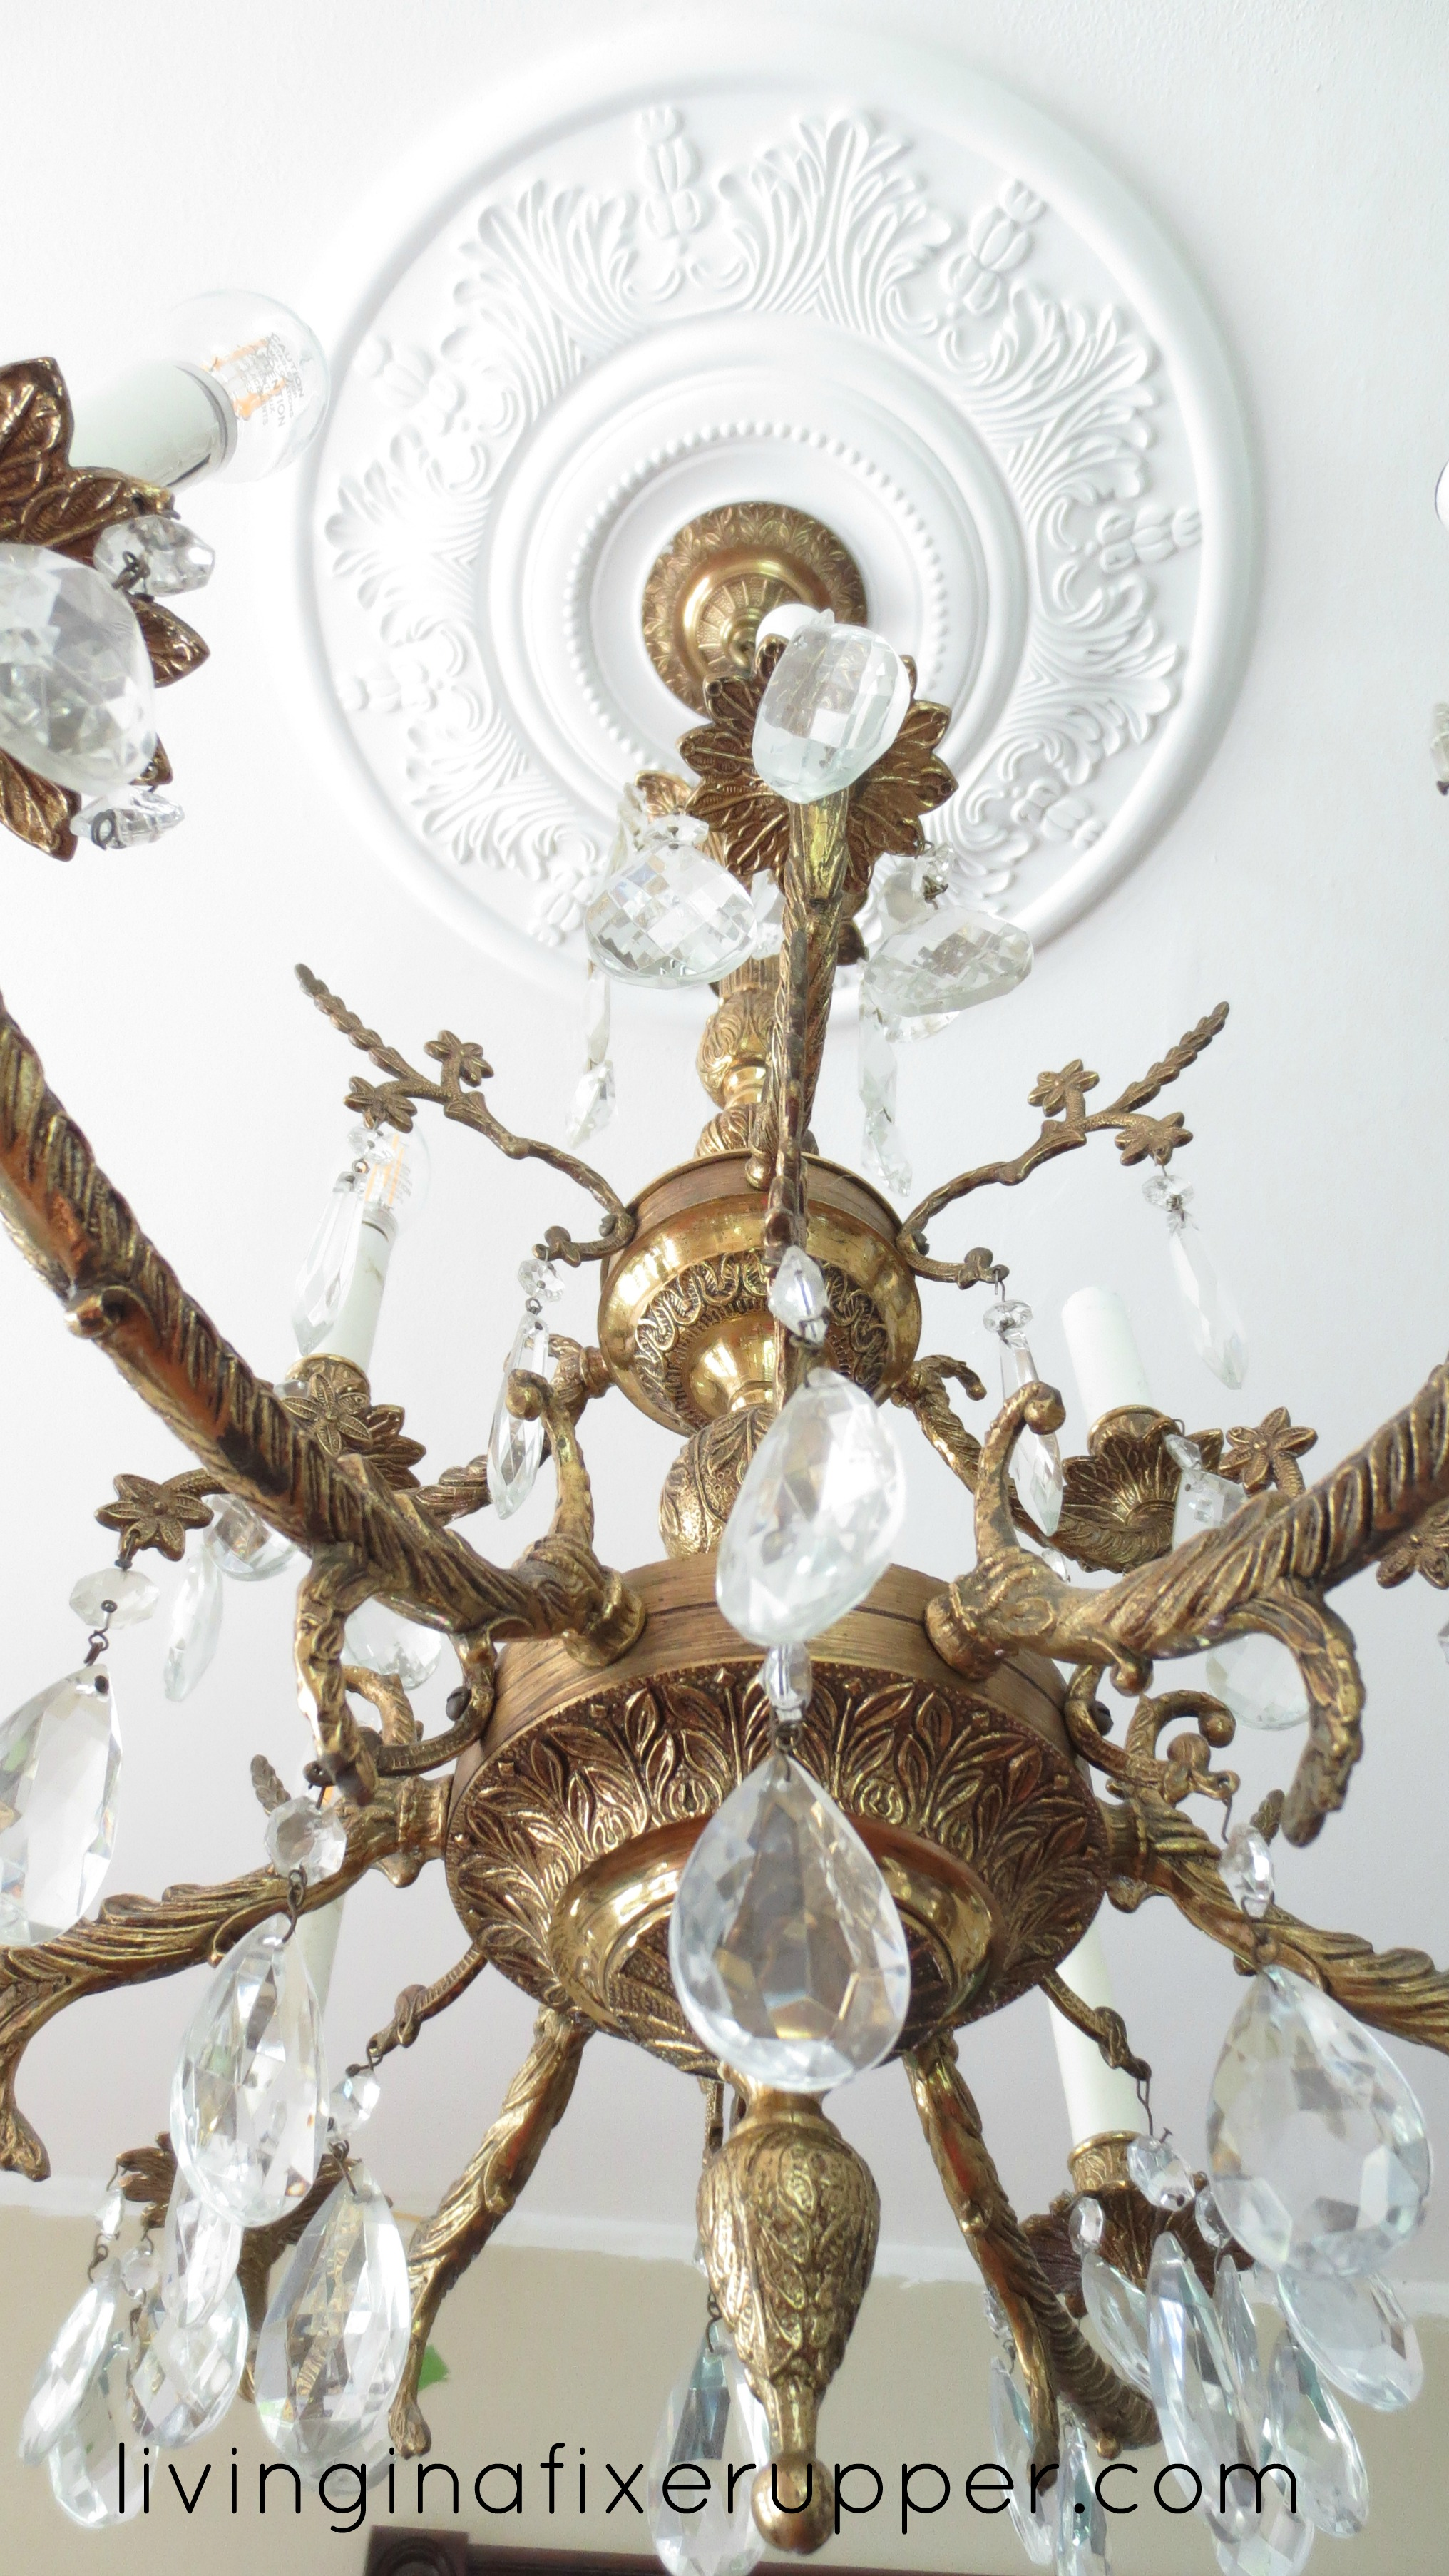 ceiling com pictures project pin blogs chandelier medallion architecturaldepot traditional